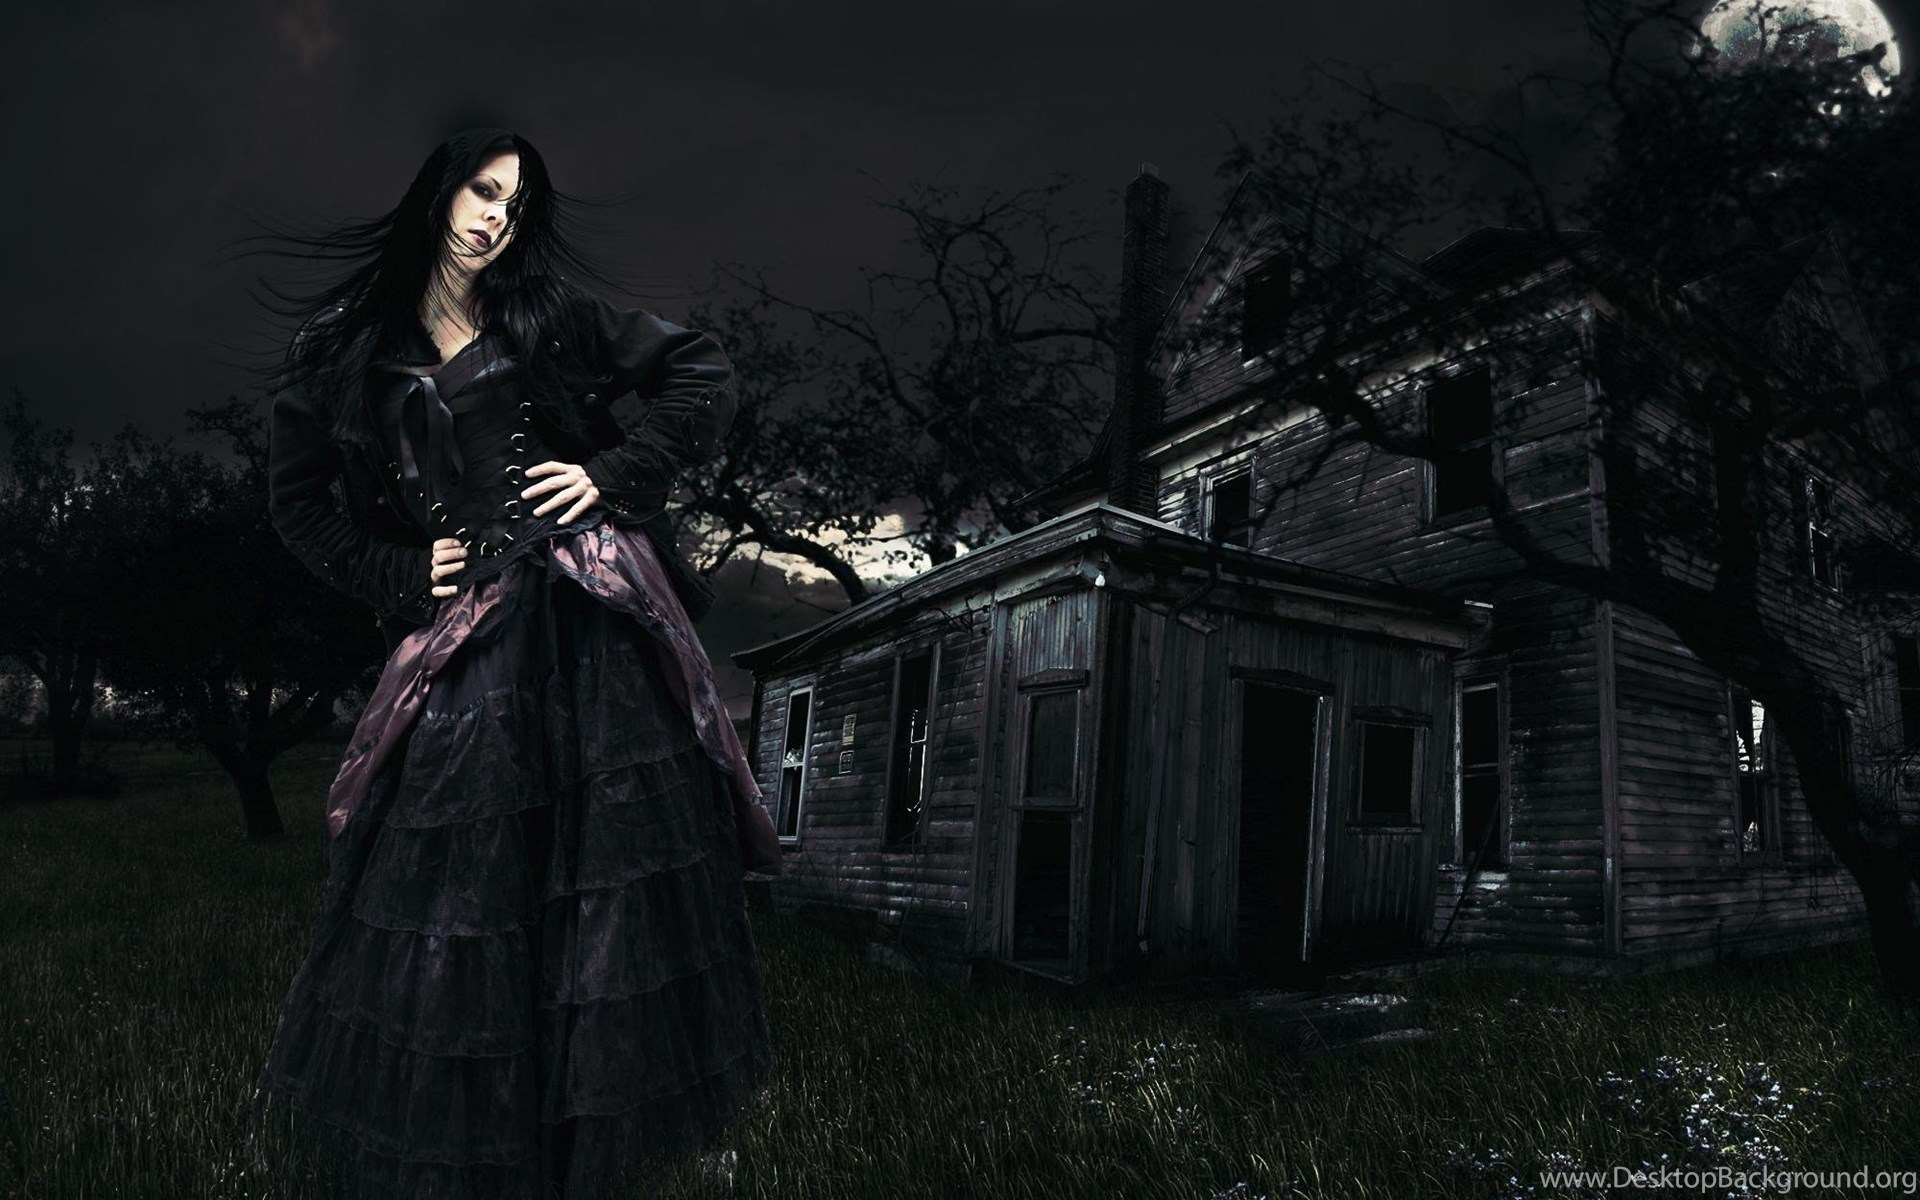 Gothic Girl Wallpapers Backgrounds With Quality HD Desktop Background